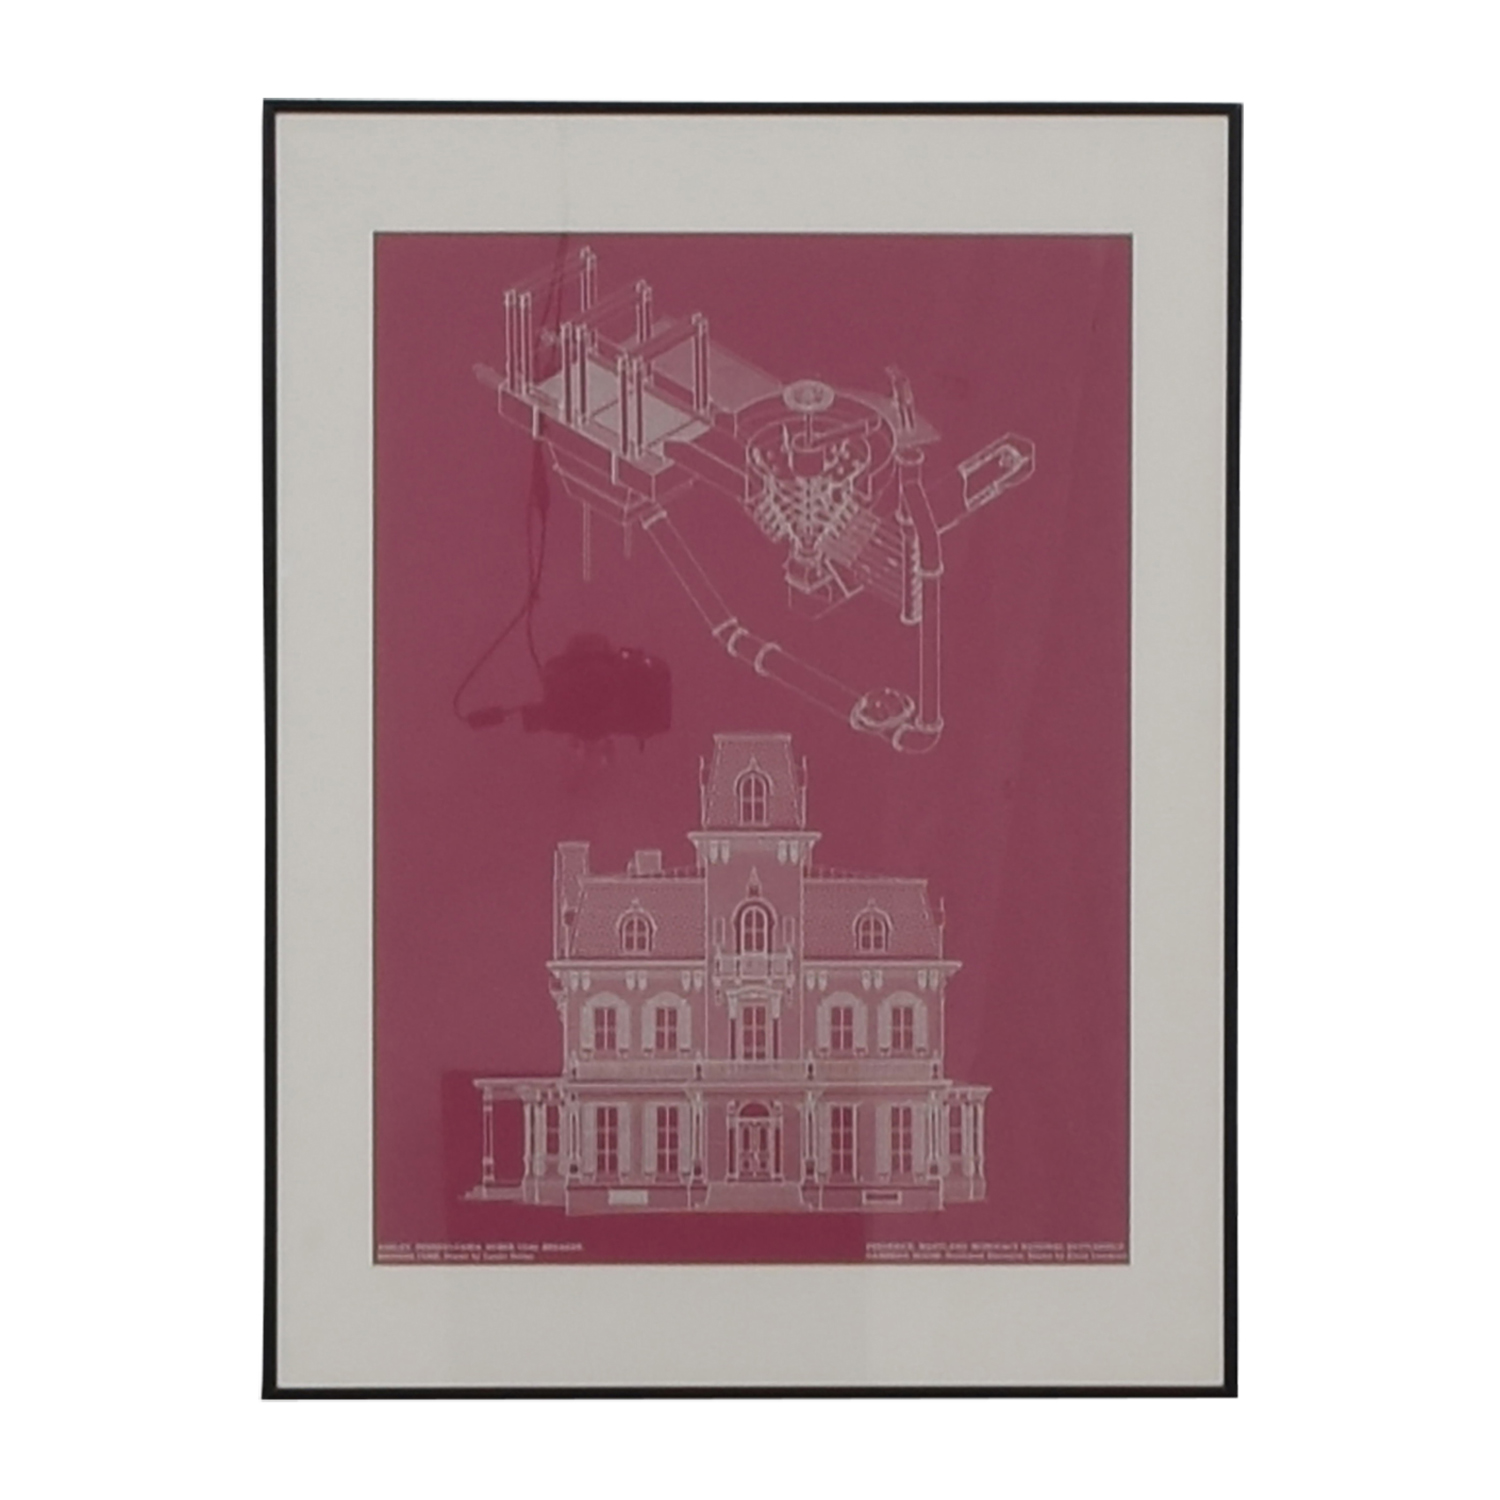 Building and Machine Pink Blueprint Framed Wall Art coupon